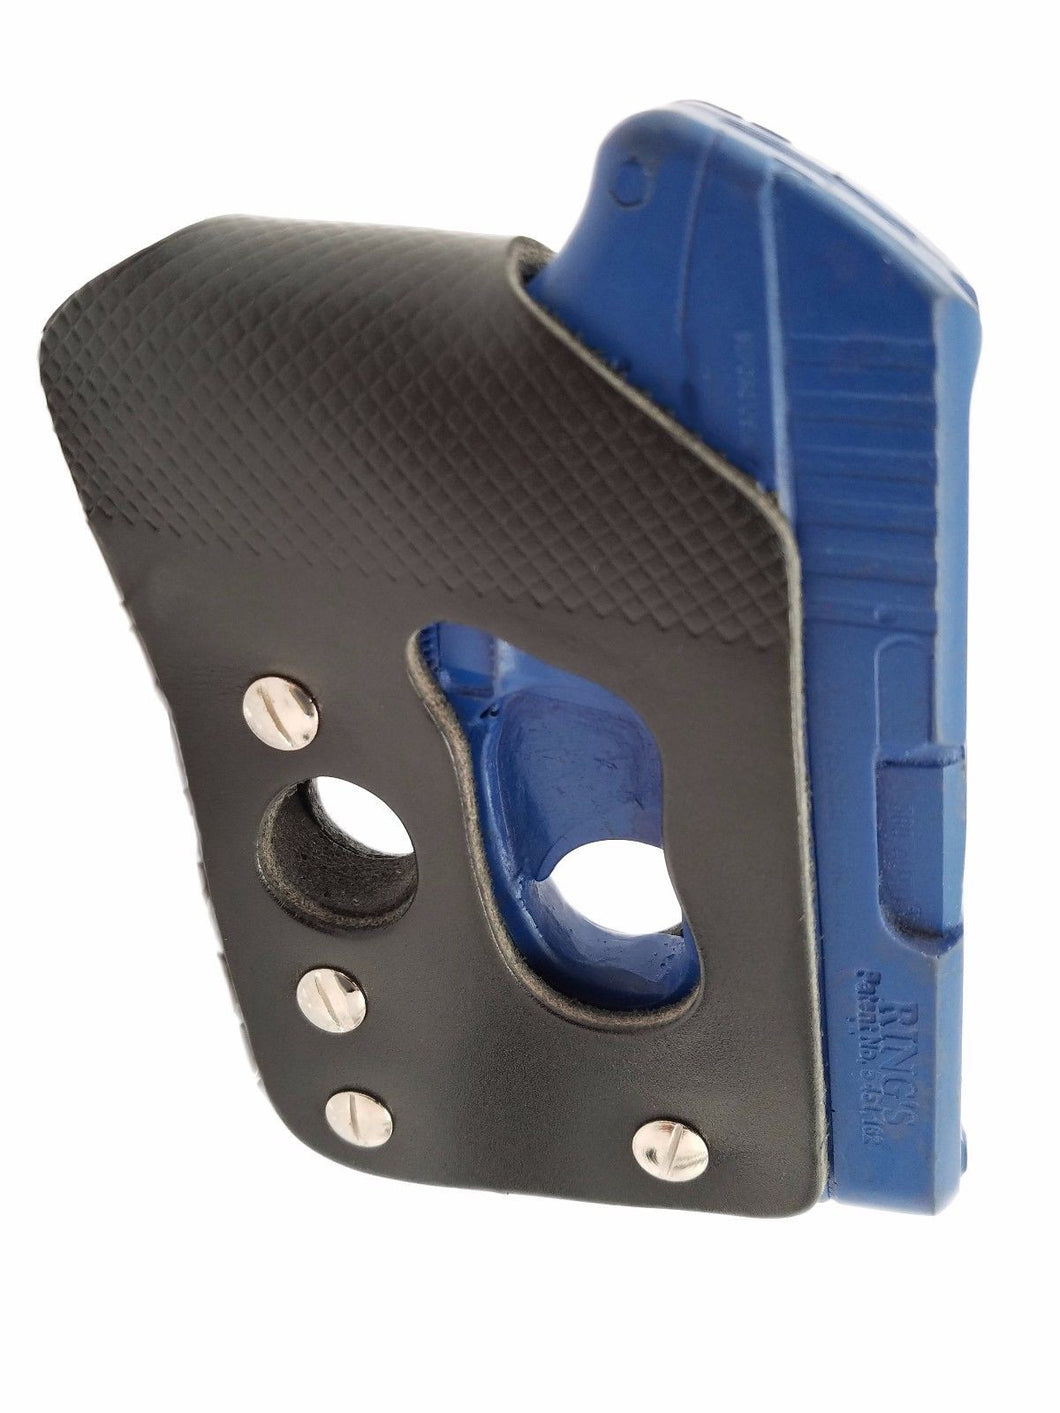 Wallet Holster for Ruger LCP Premium Leather